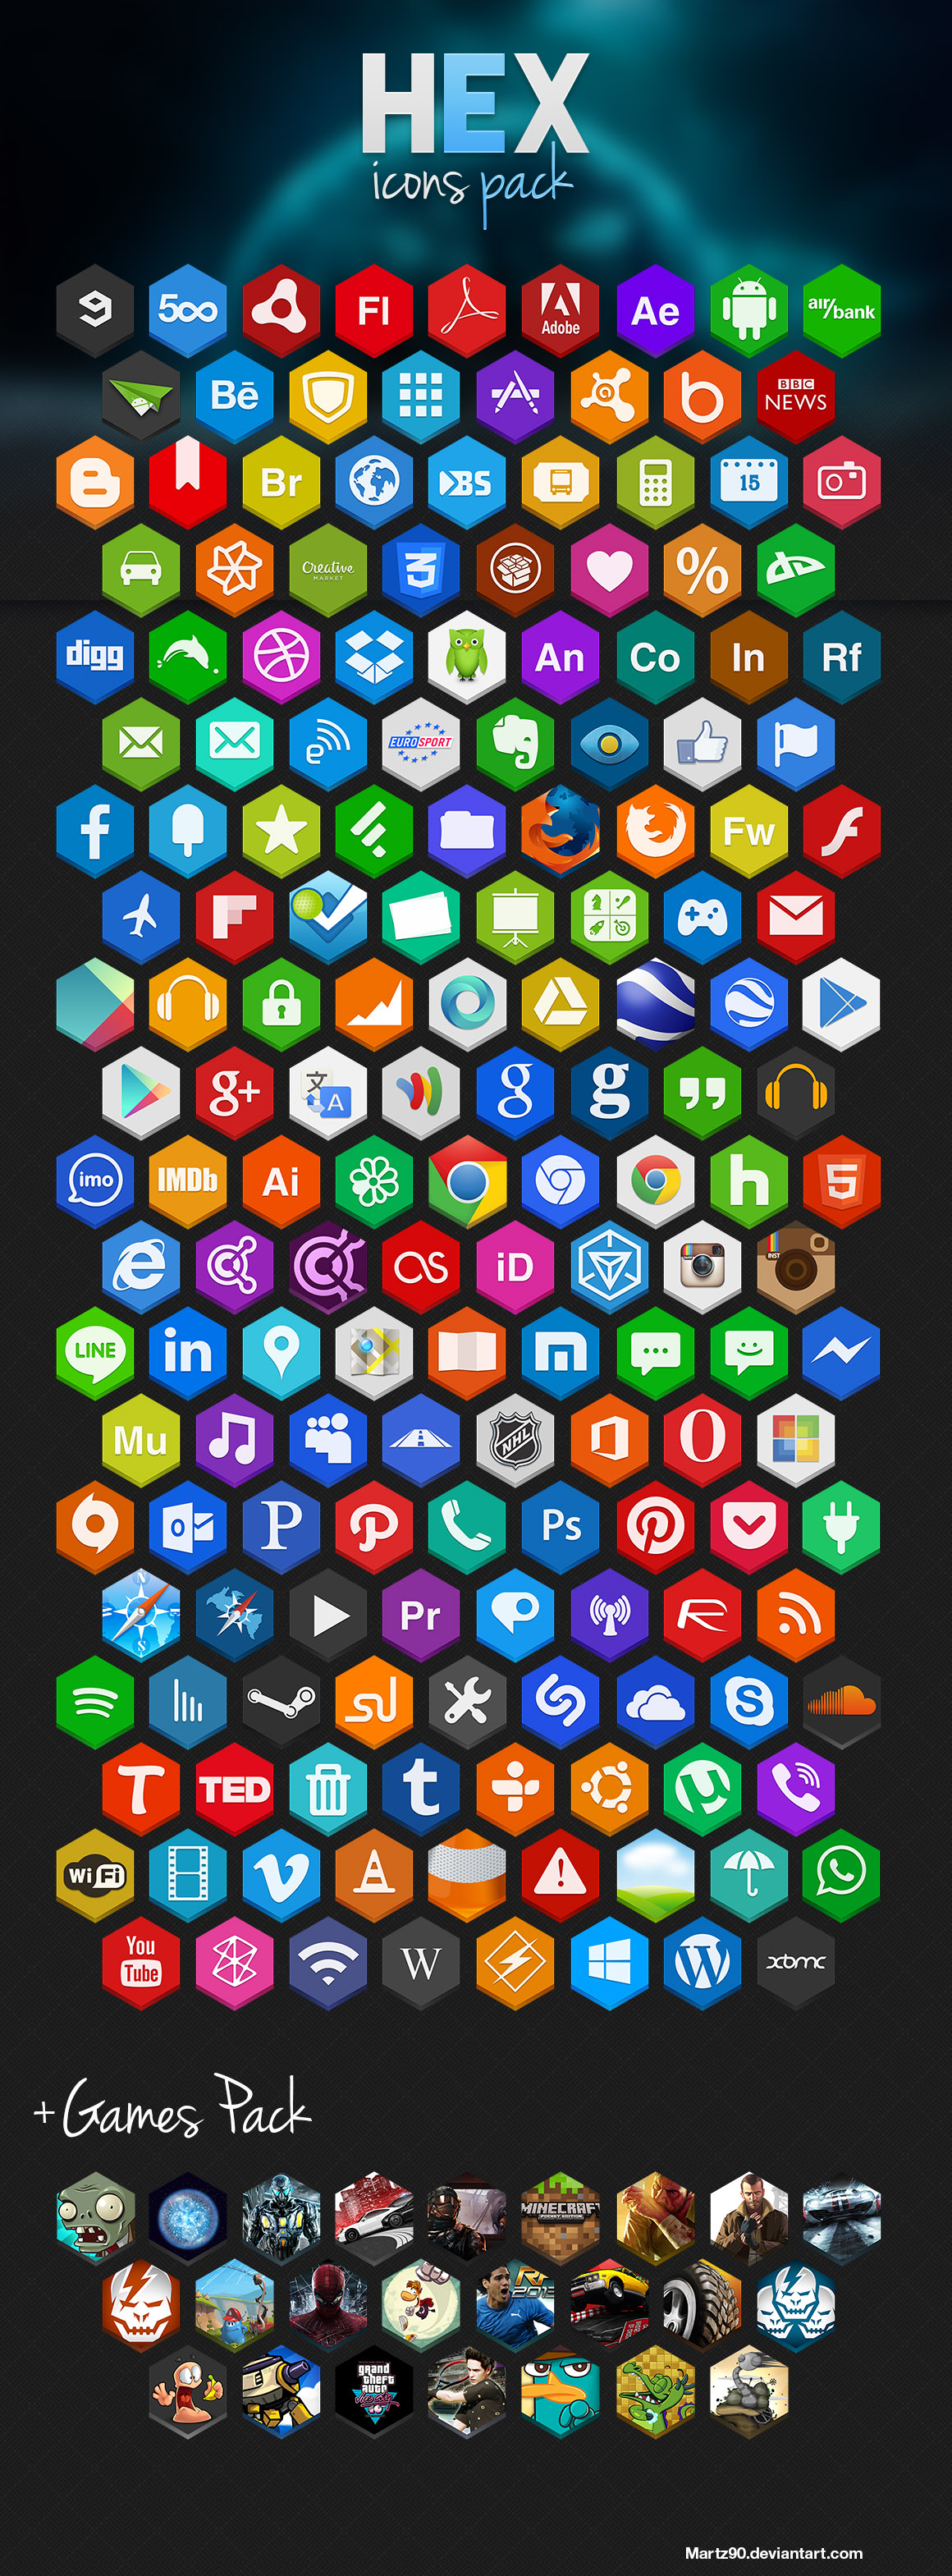 hex_icons_pack_by_martz90-d6g0rtx